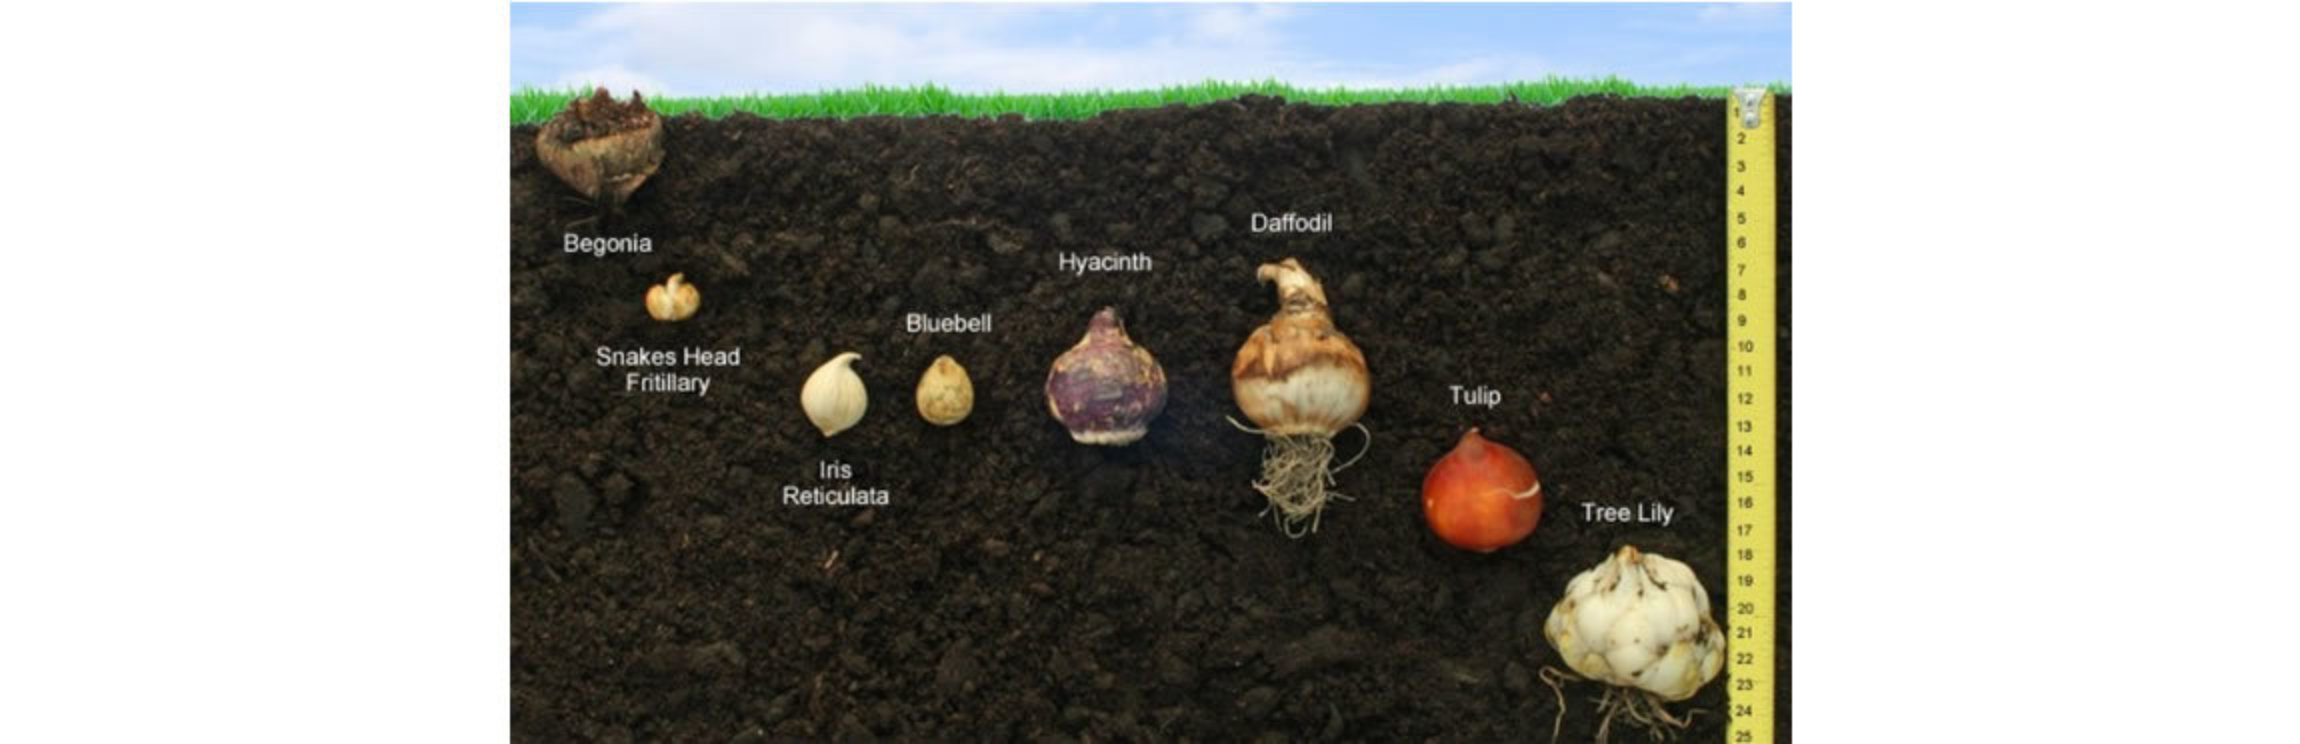 Bulbs and the curriculum